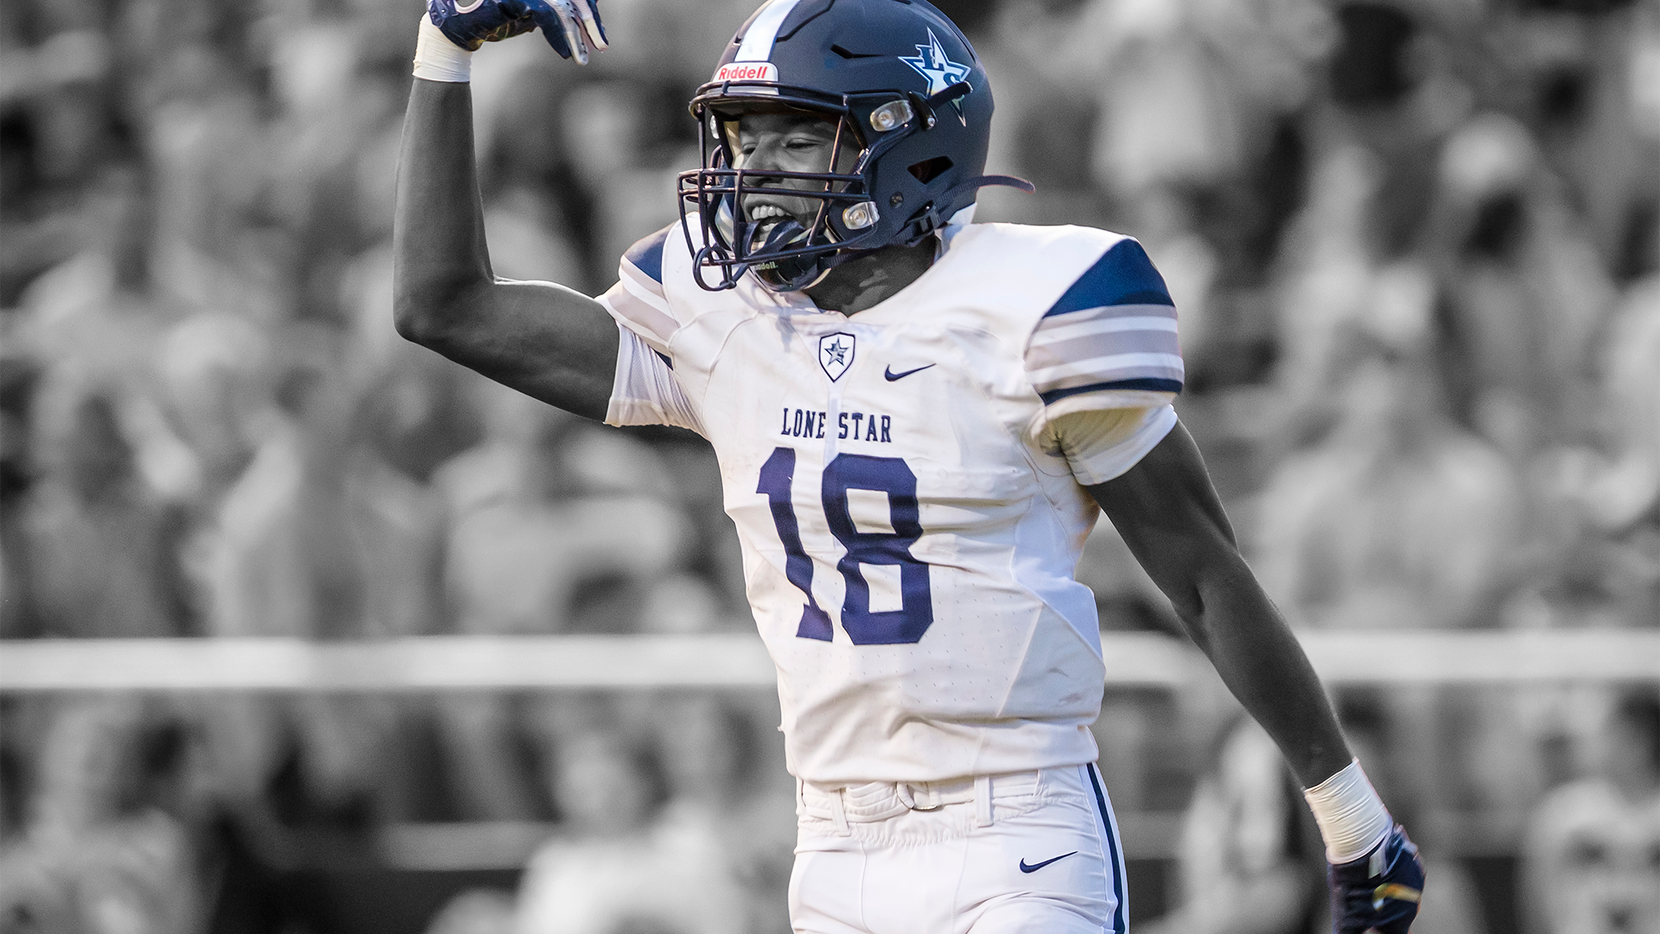 Frisco Lone Star wide receiver Marvin Mims celebrates after scoring on a touchdown reception on the first play from scrimmage during a high school football game against Highland Park at Highlander Stadium on Friday, Sept. 13, 2019, in Dallas.